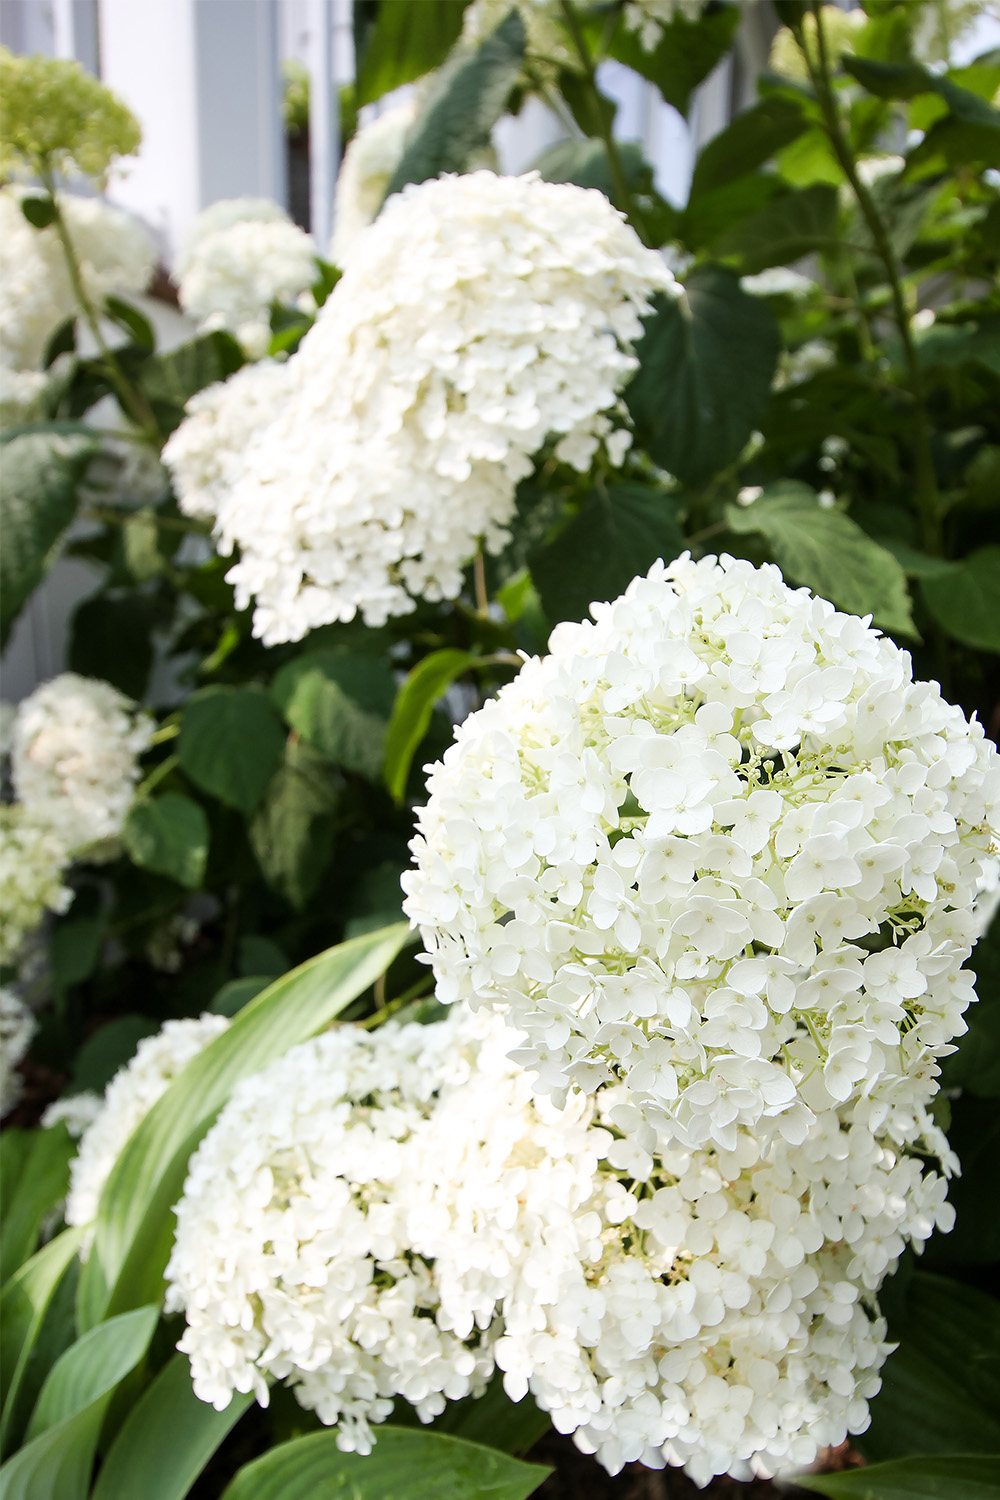 Try these emergency first aid tactics for hydrangea problems first before you go too crazy buying the entire pesticide aisle at the garden centre!